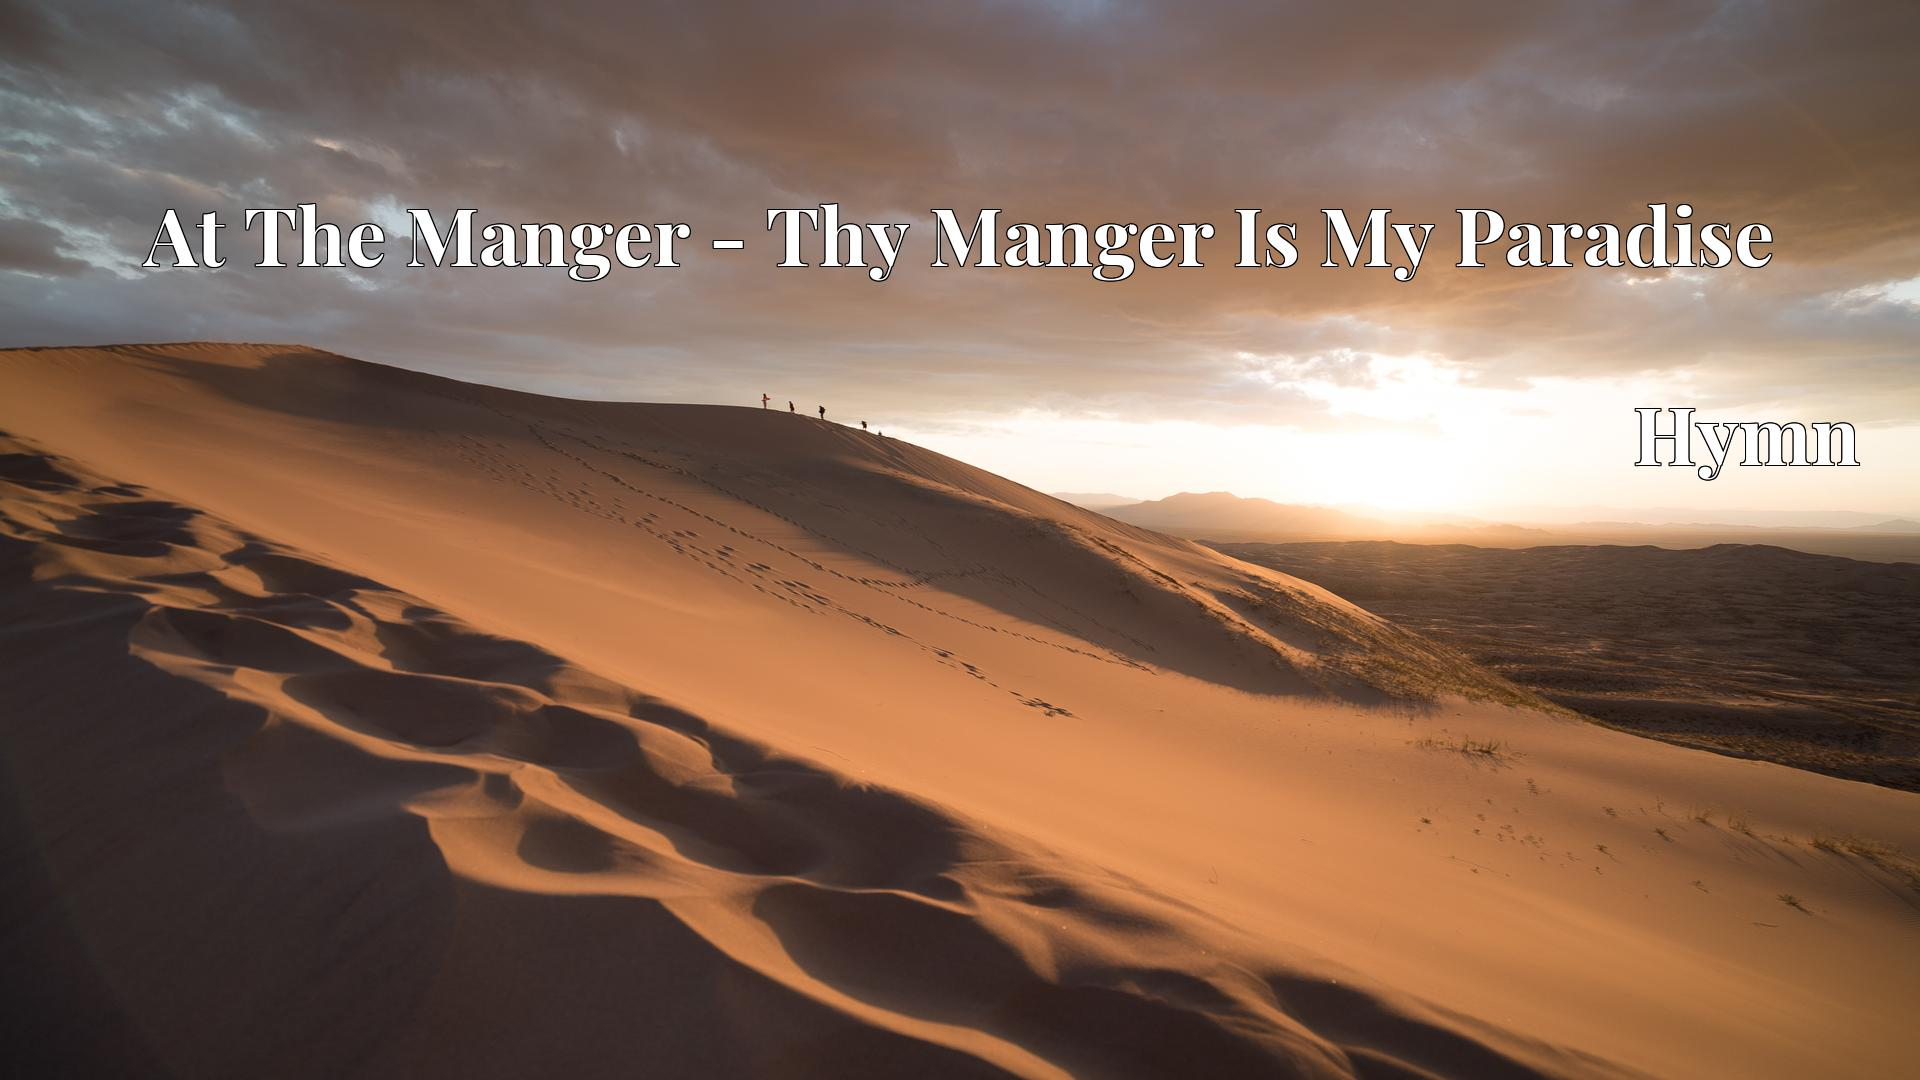 At The Manger - Thy Manger Is My Paradise - Hymn